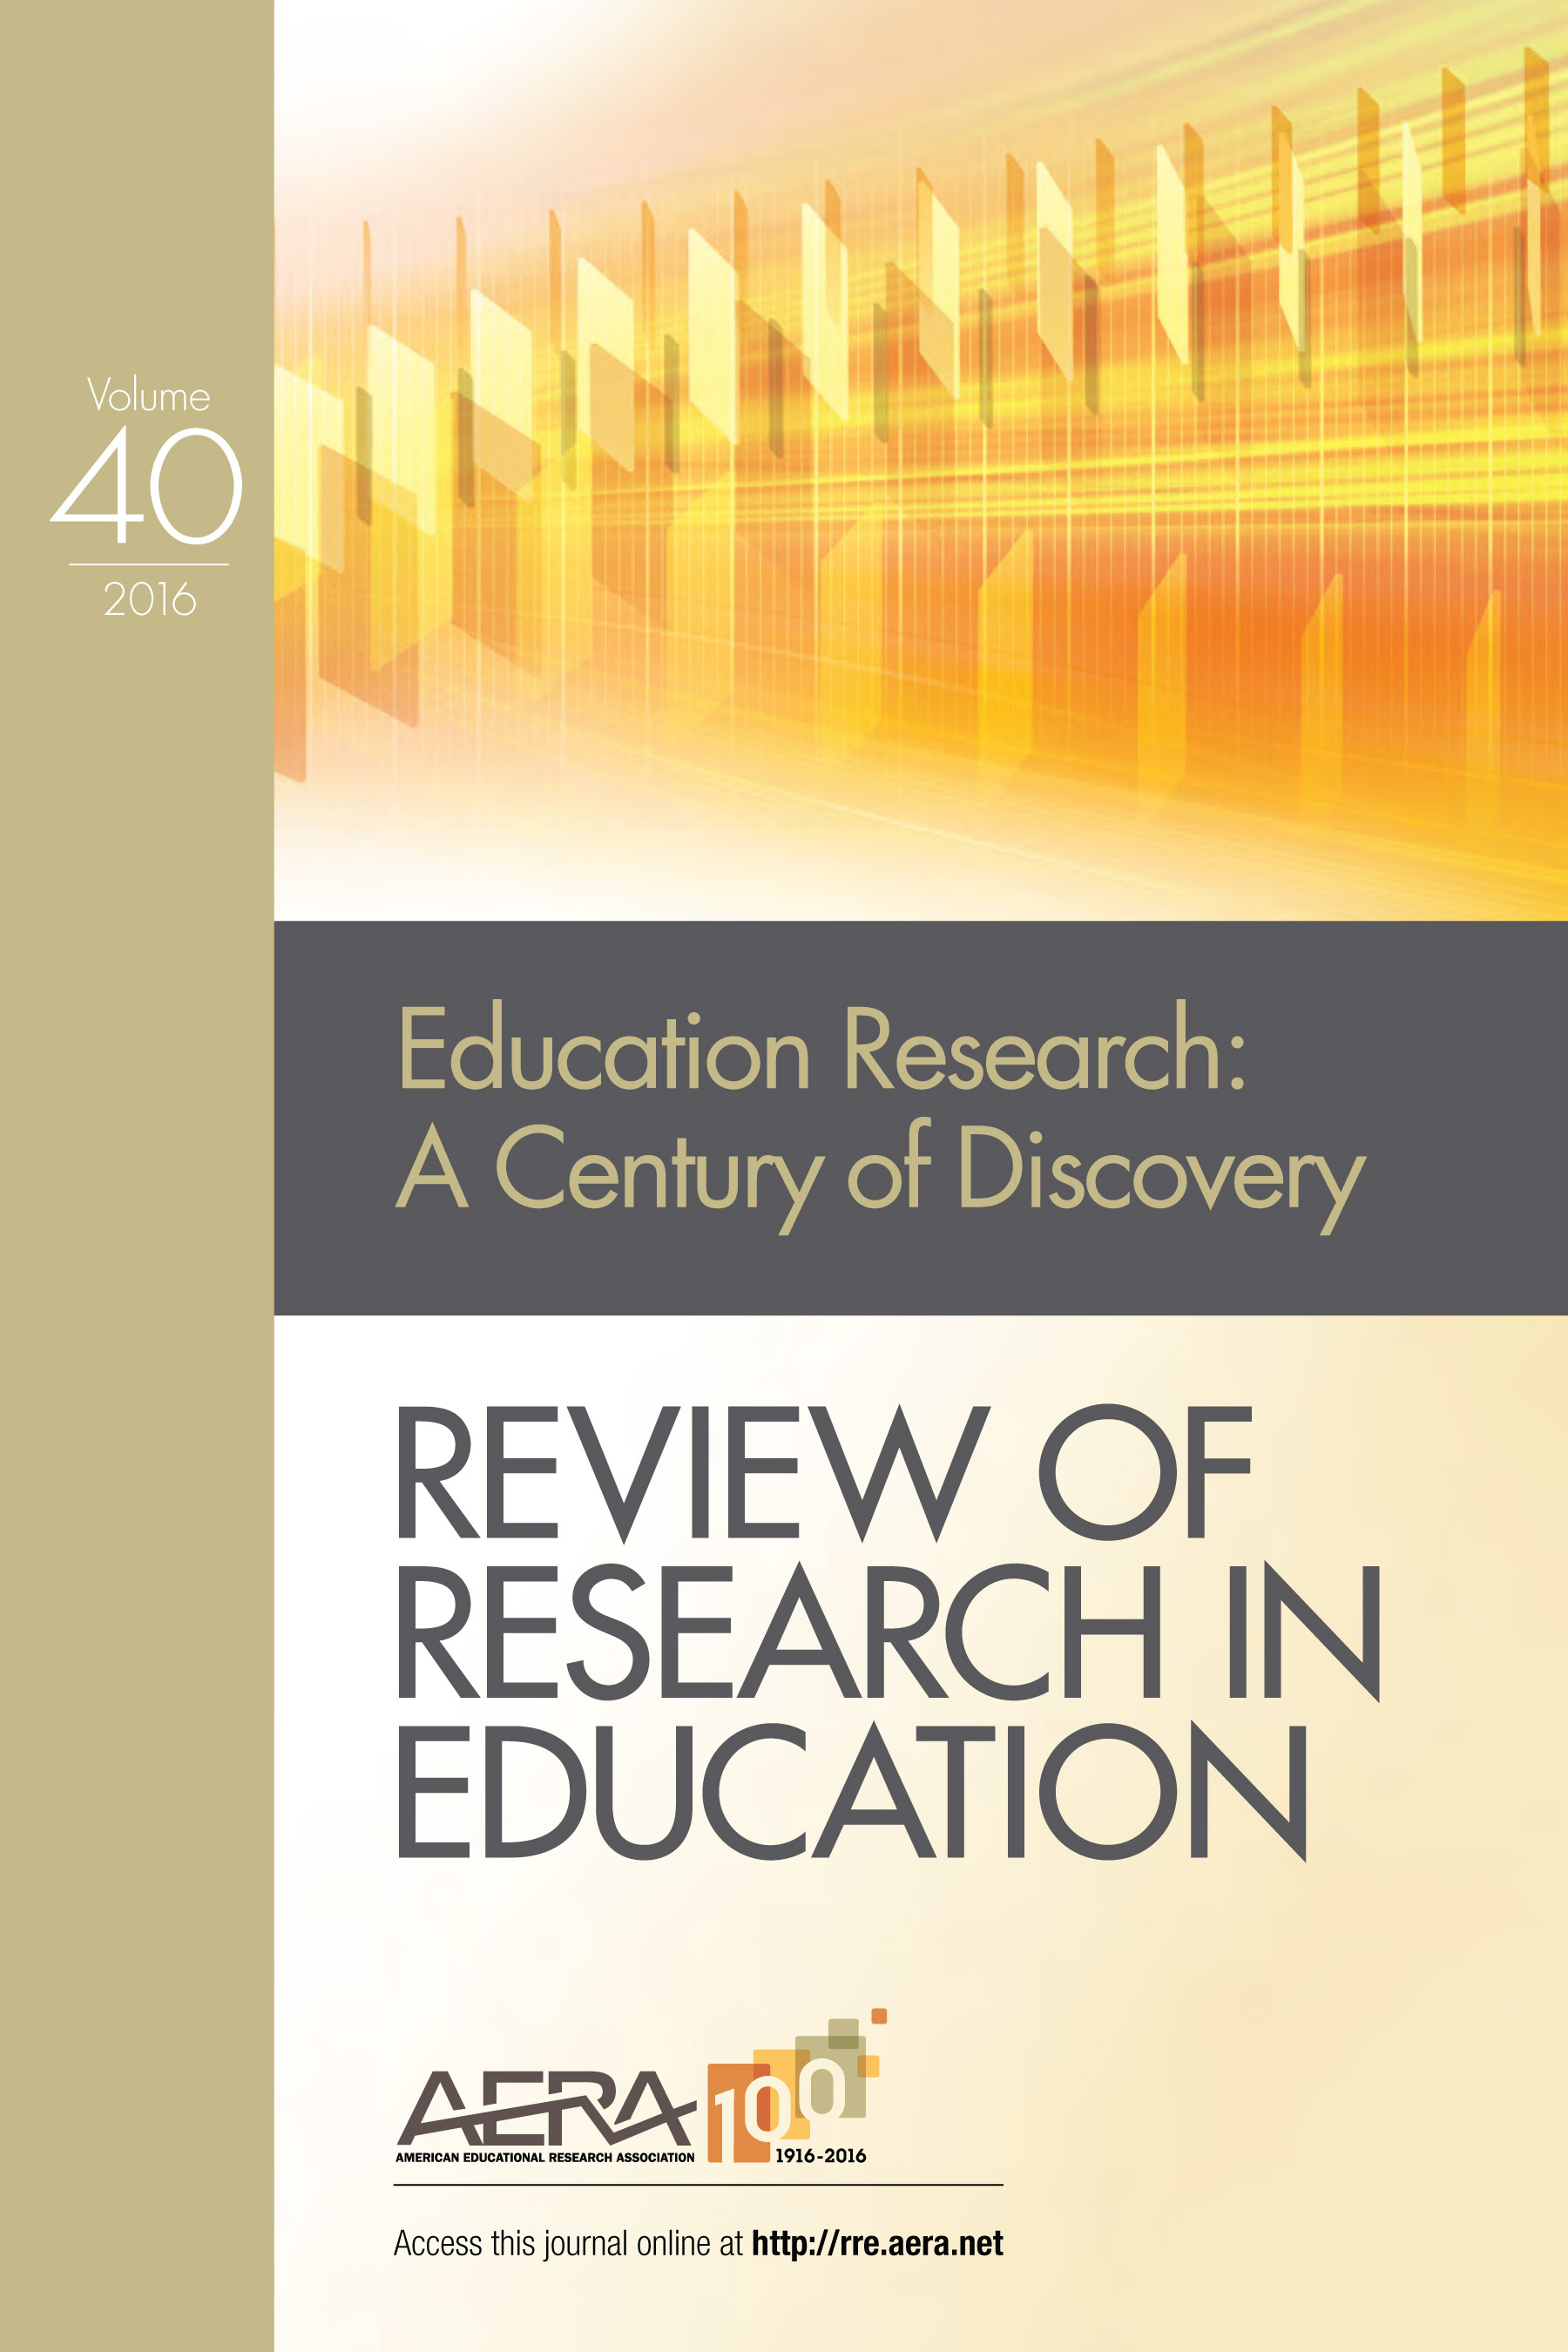 dissertation fellowship education research